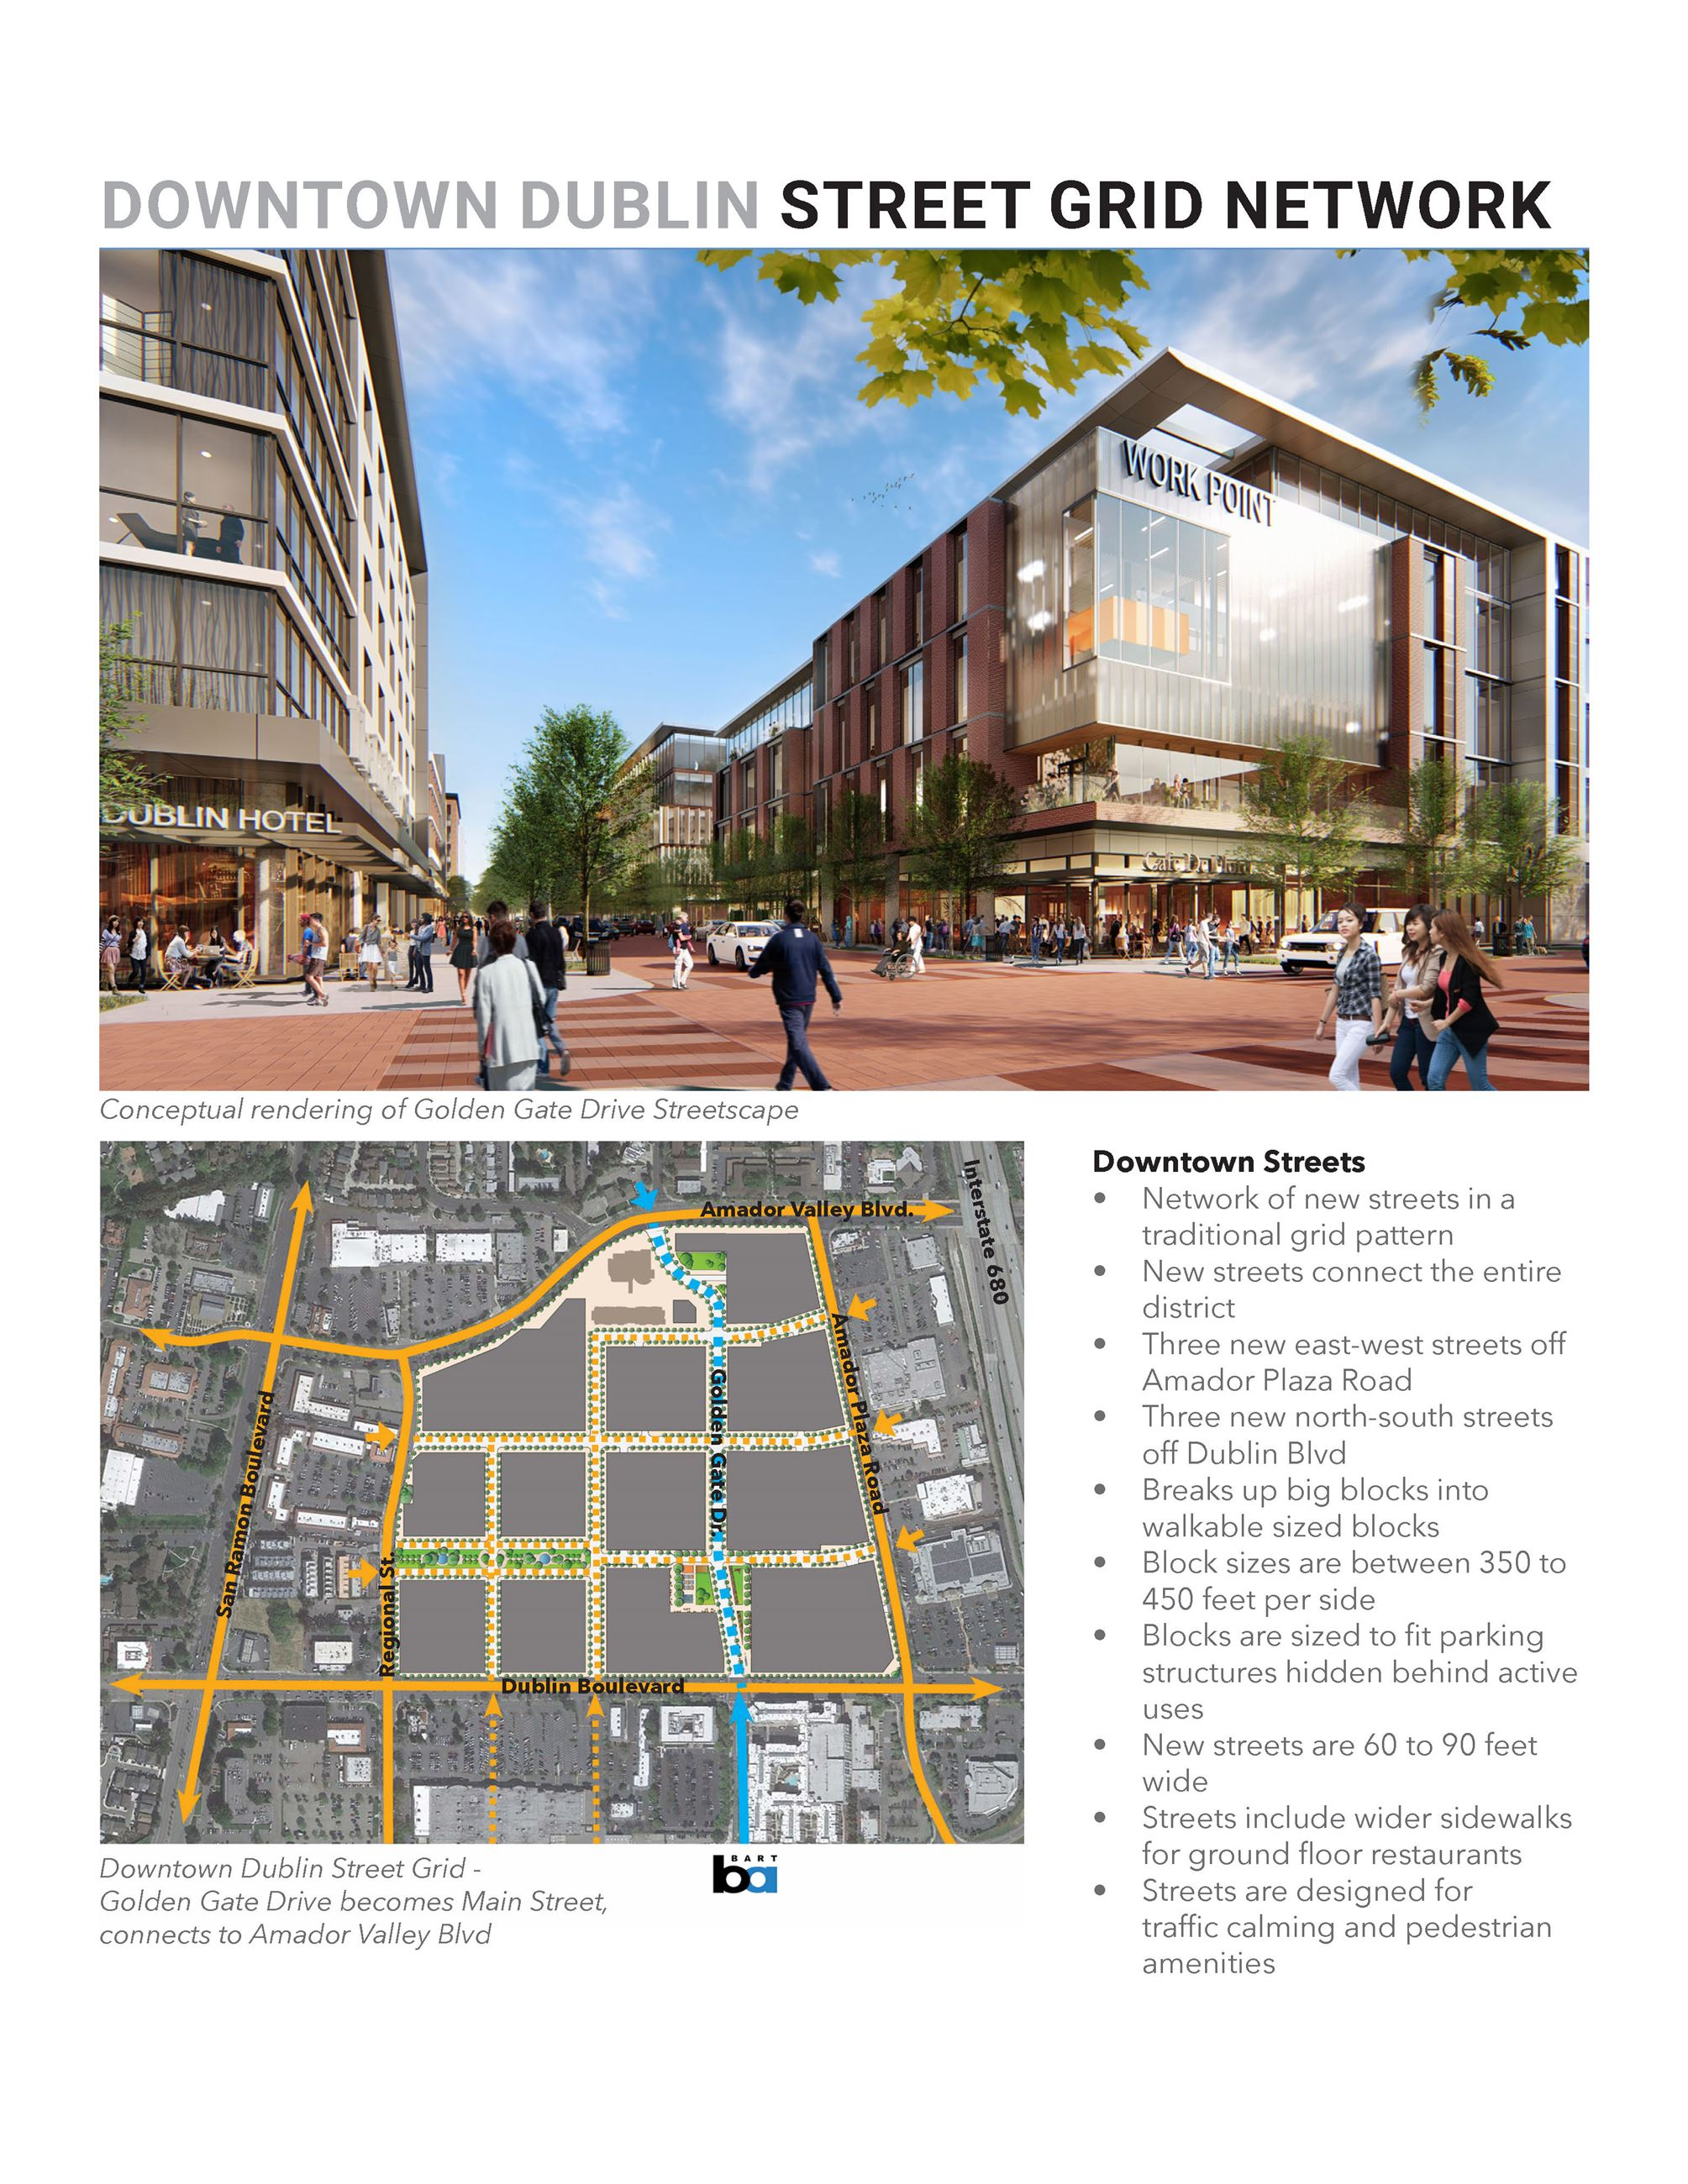 Adopted Downtown Dublin Preferred Vision - Rendering of Street Grid Network